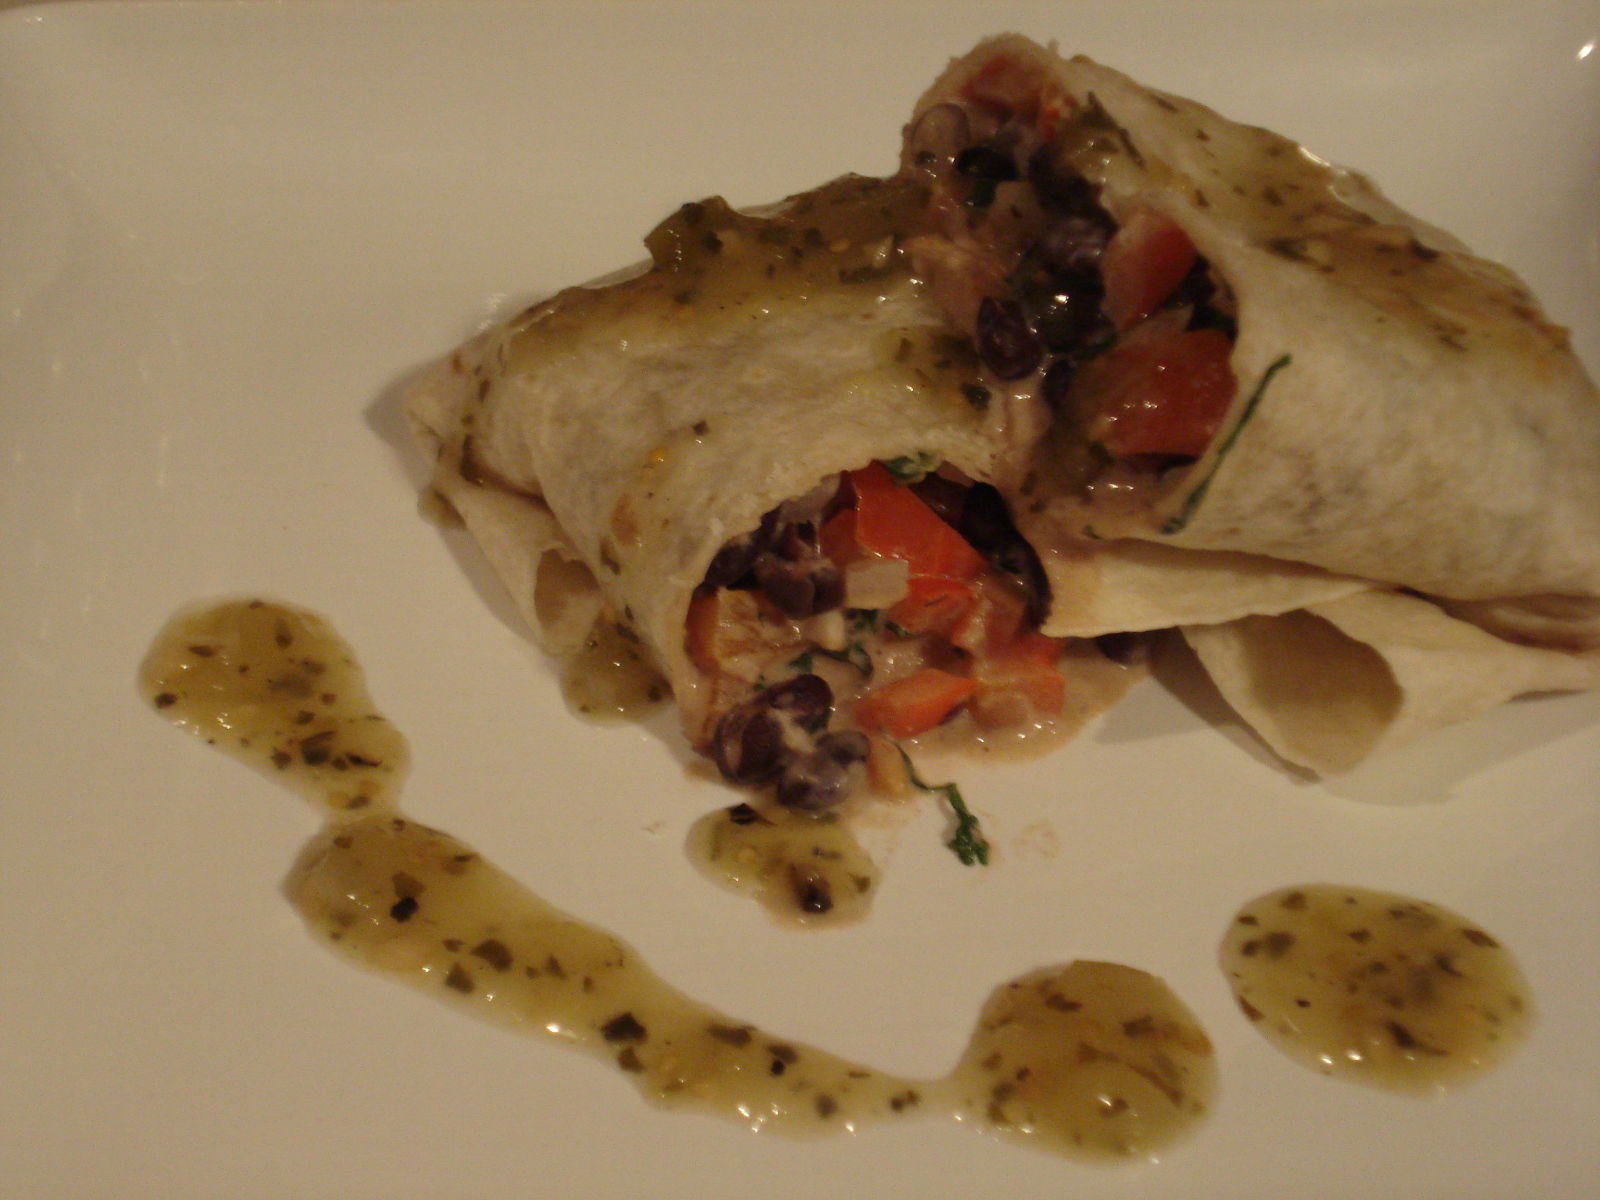 Black_Bean_Burrito_-_Picture_via_clefoodgoddess.com